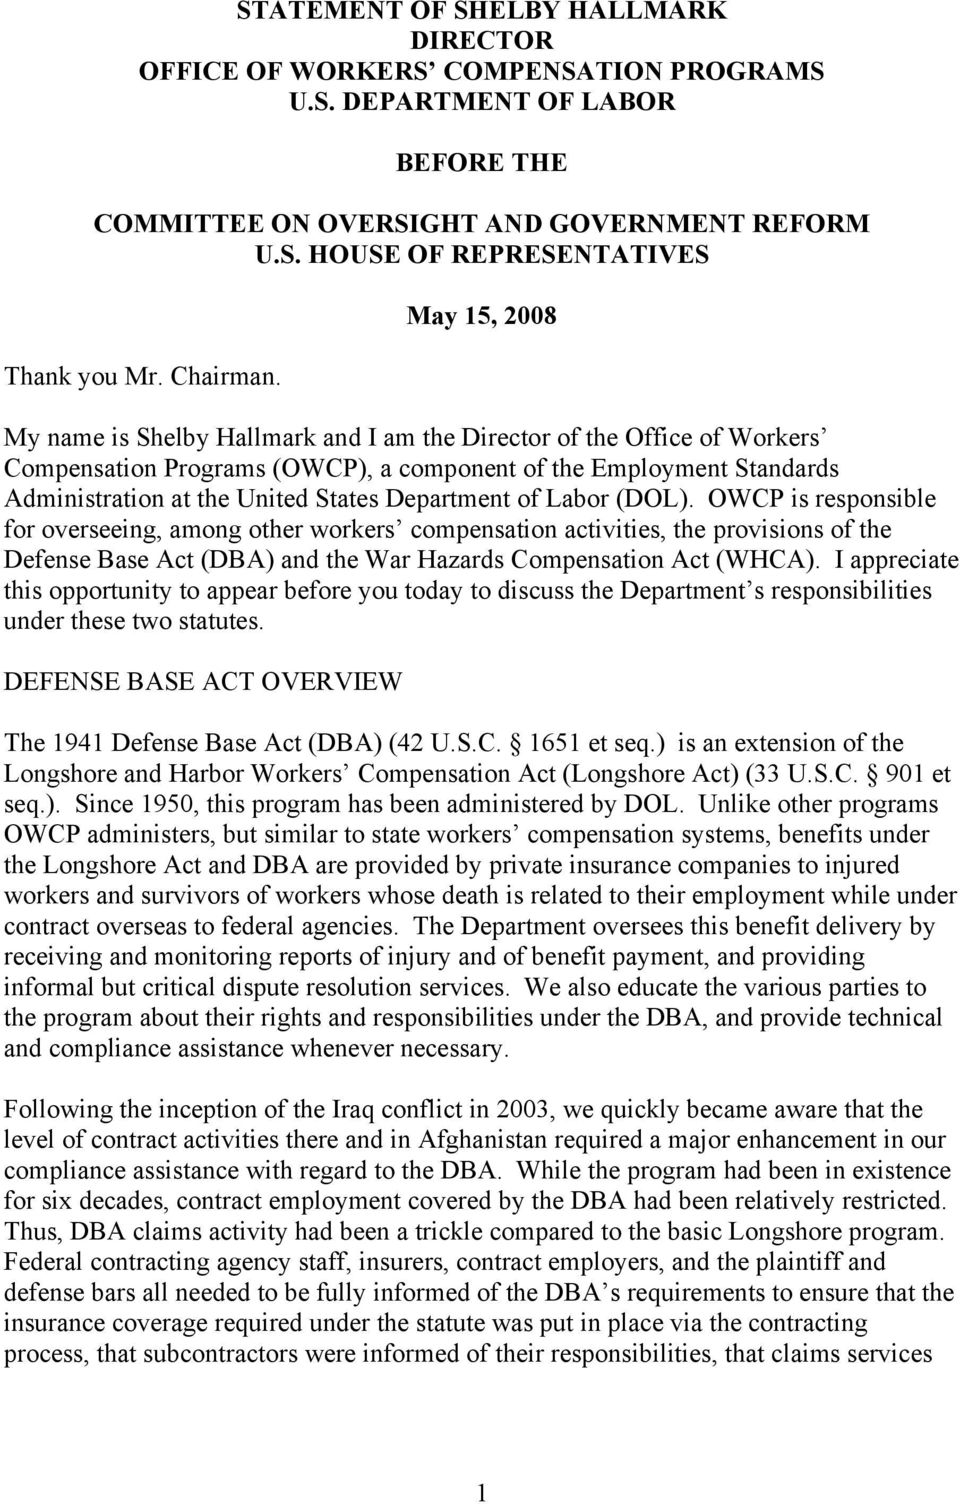 May 15, 2008 My name is Shelby Hallmark and I am the Director of the Office of Workers Compensation Programs (OWCP), a component of the Employment Standards Administration at the United States